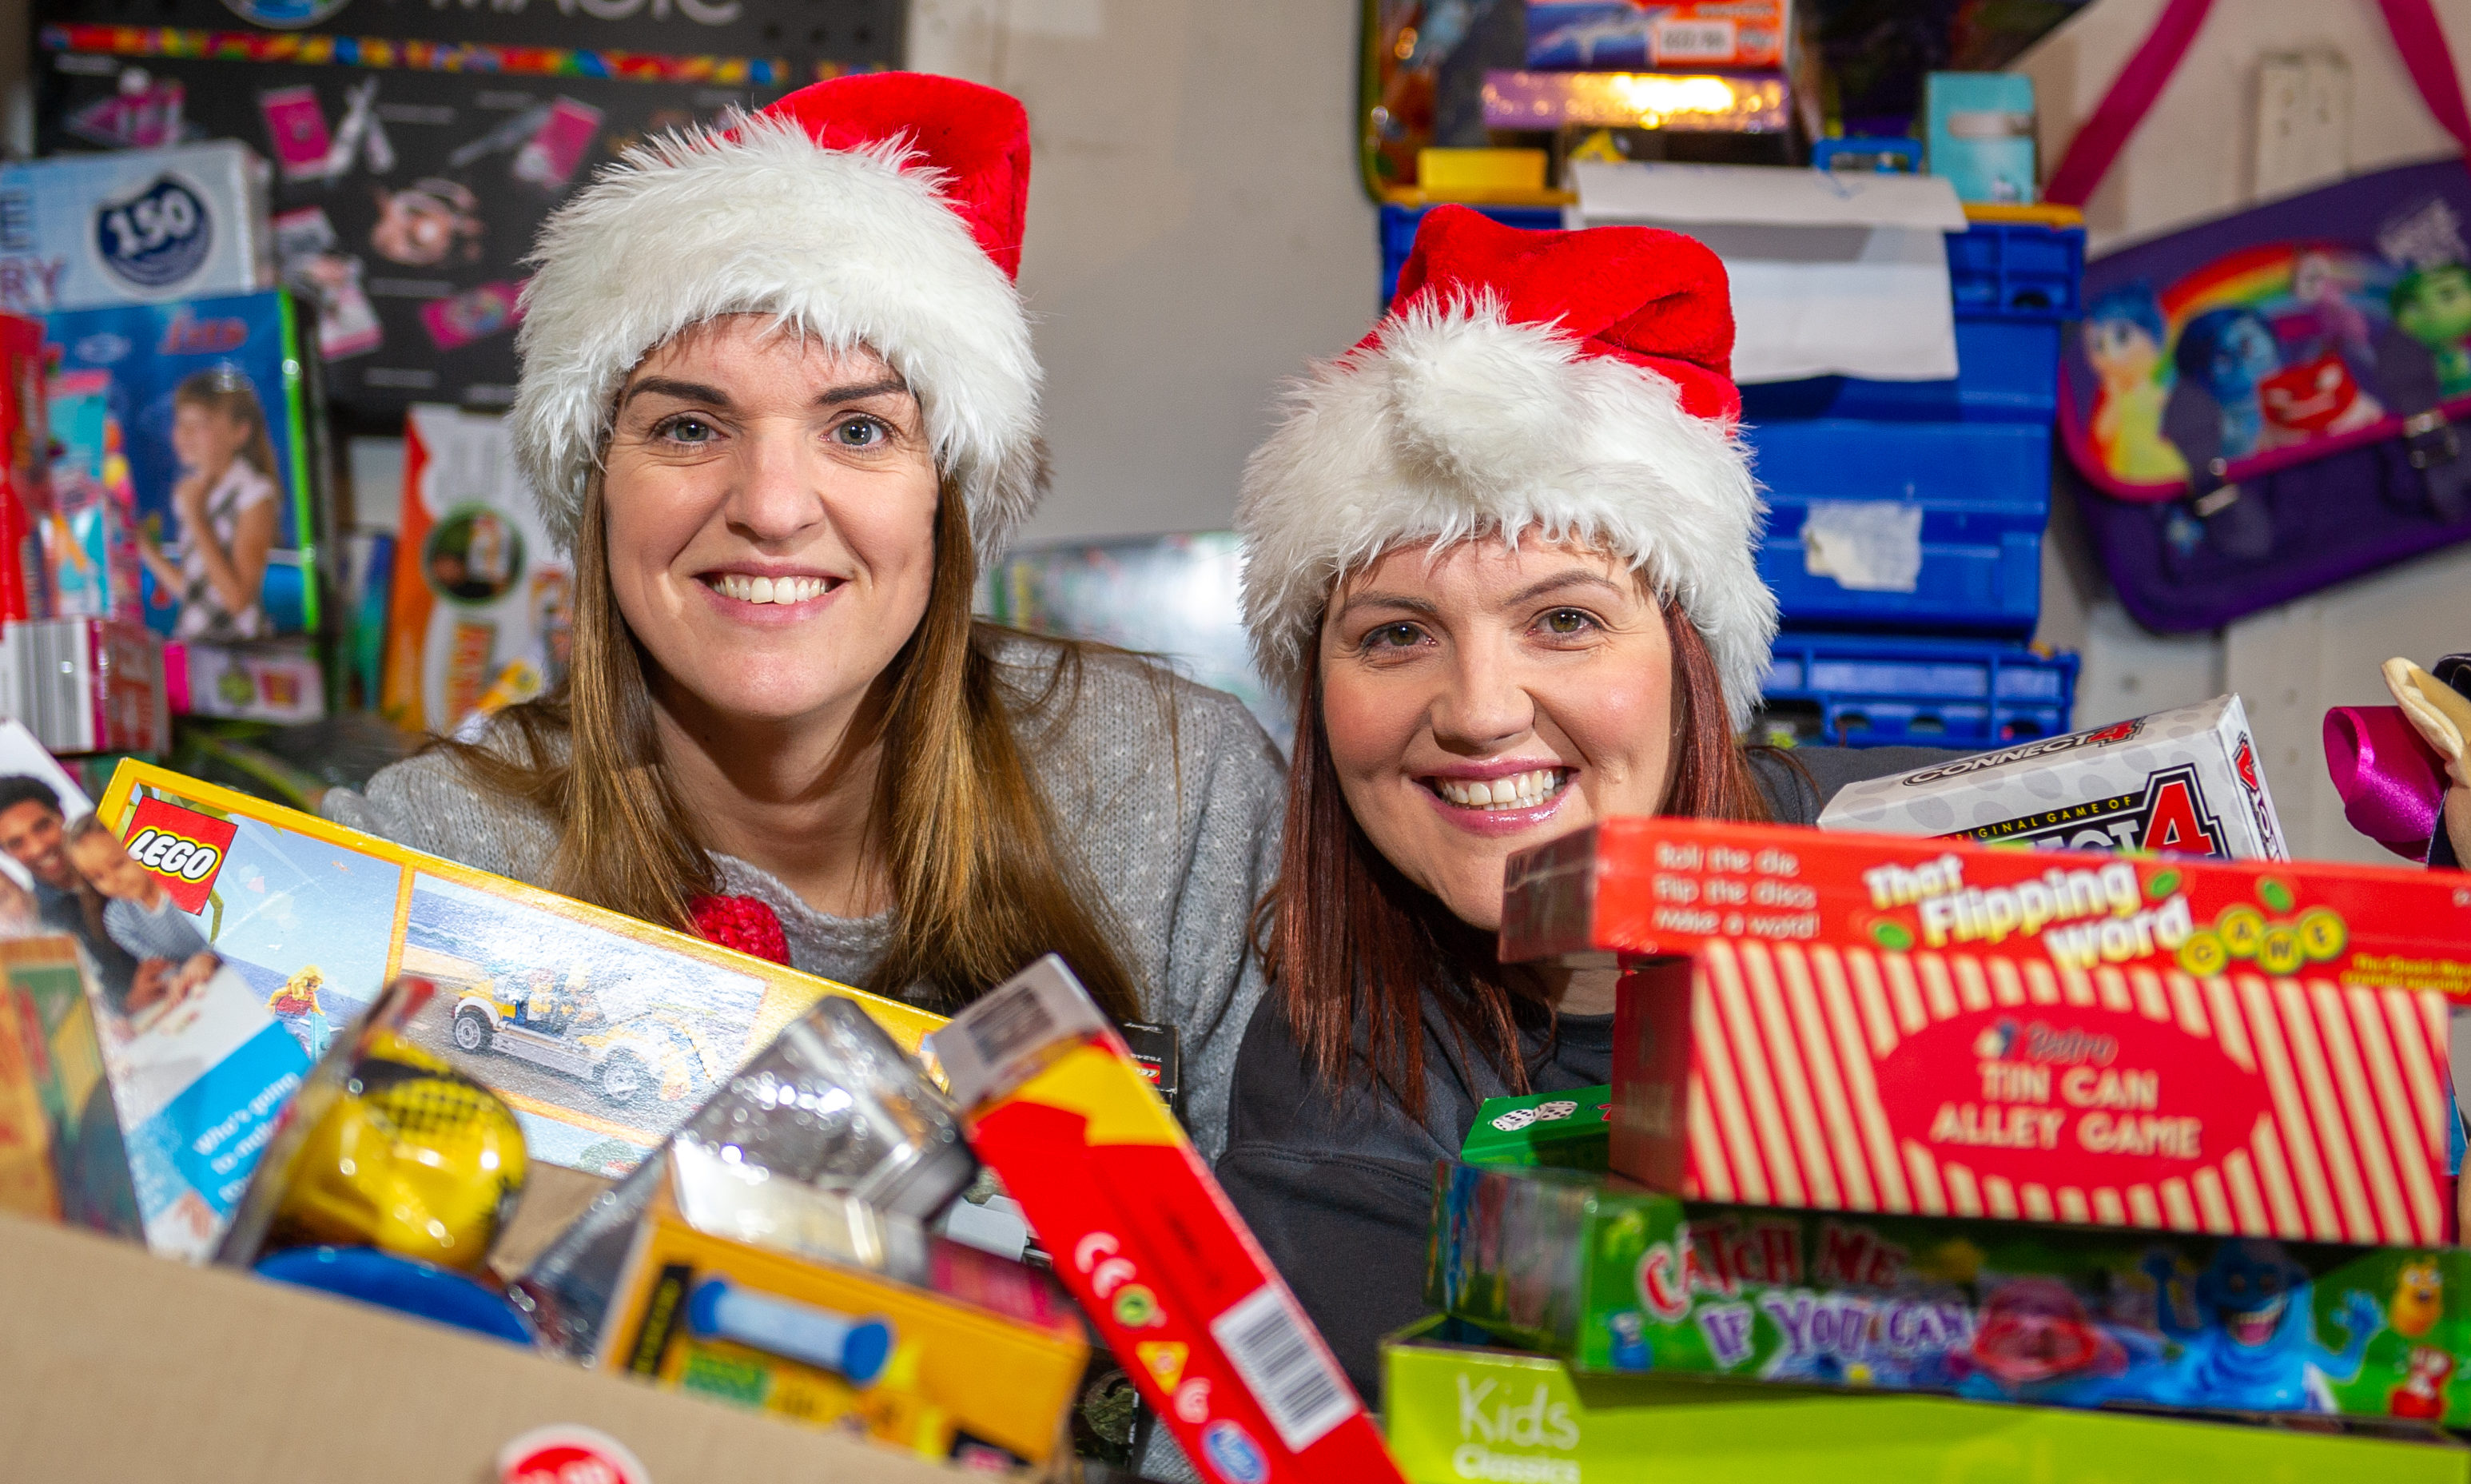 Cupar-based social workers Laura Lumsden and Victoria Leonard with some of the donations to Toy Drive